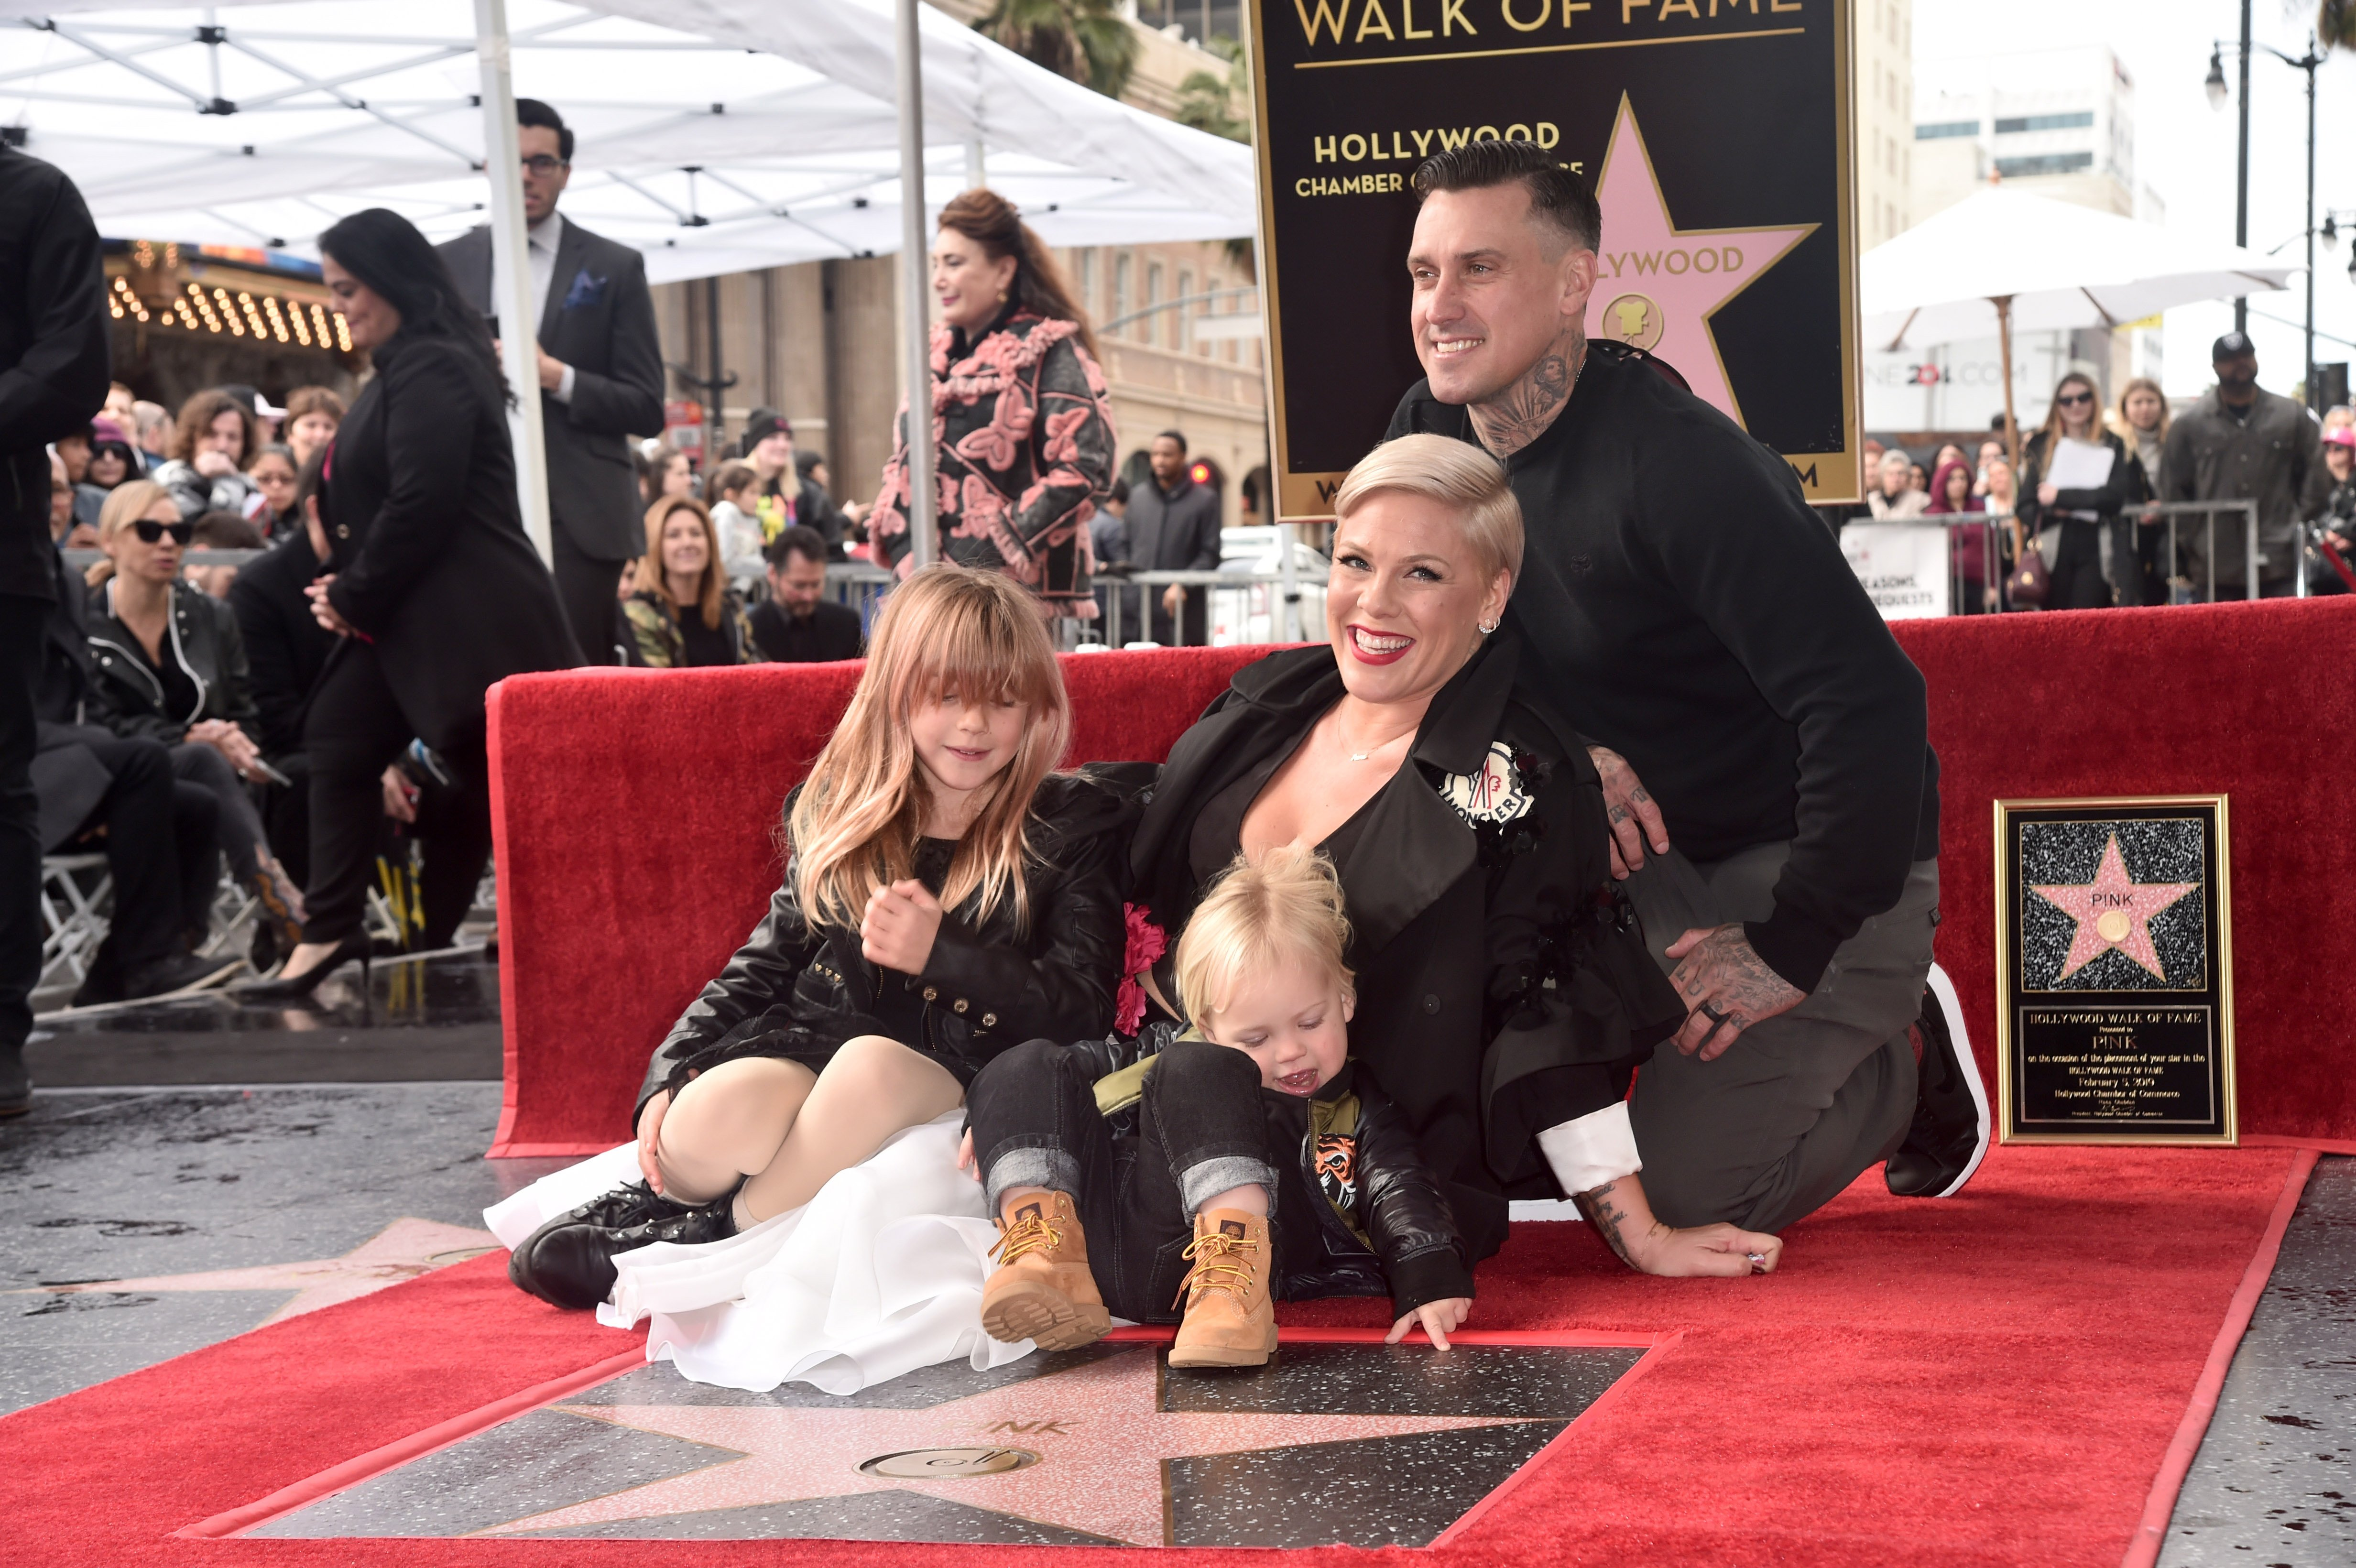 Pink receiving her Hollywood Walk of Fame Star accompanied by her children and husband | Photo: Getty Images